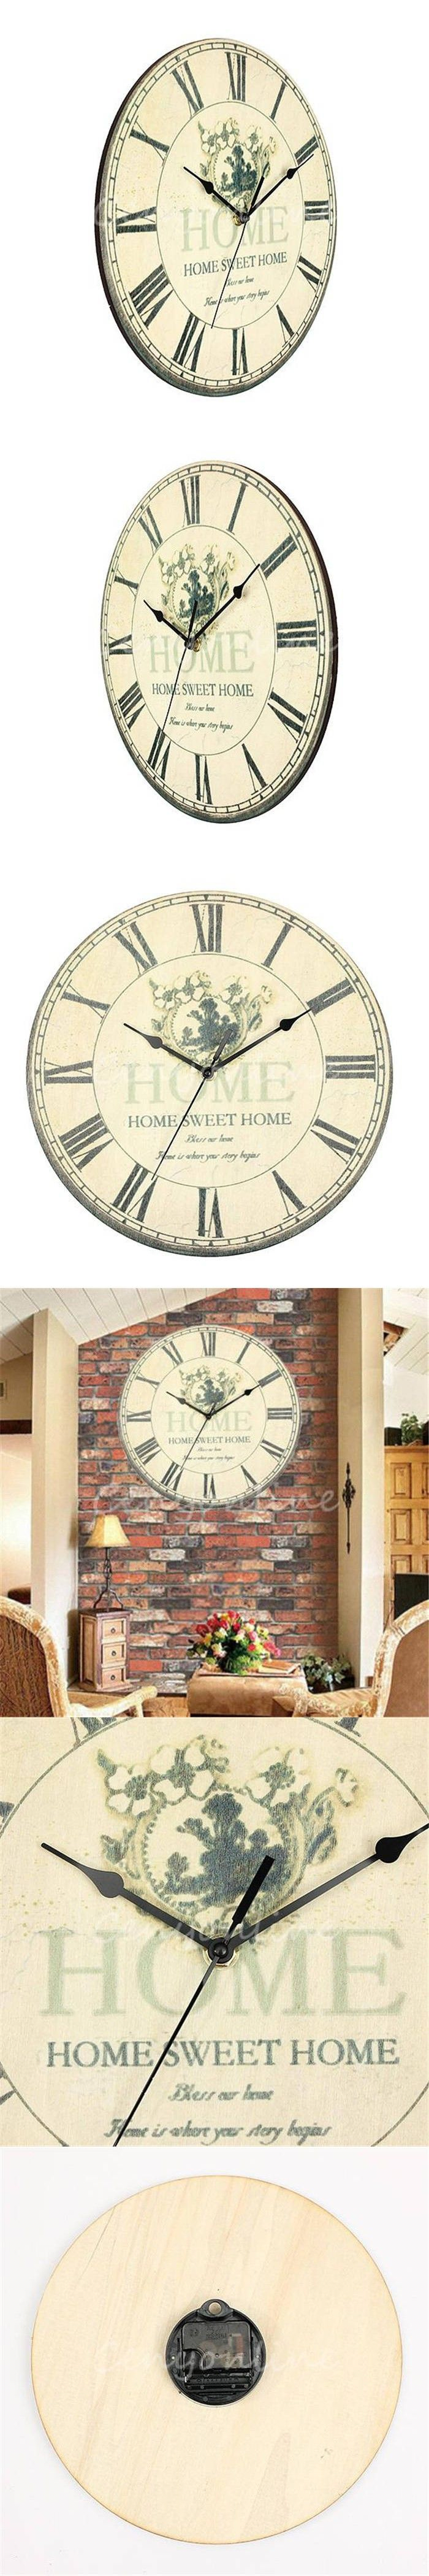 Large beauty love wall clock flower vintage rustic design home